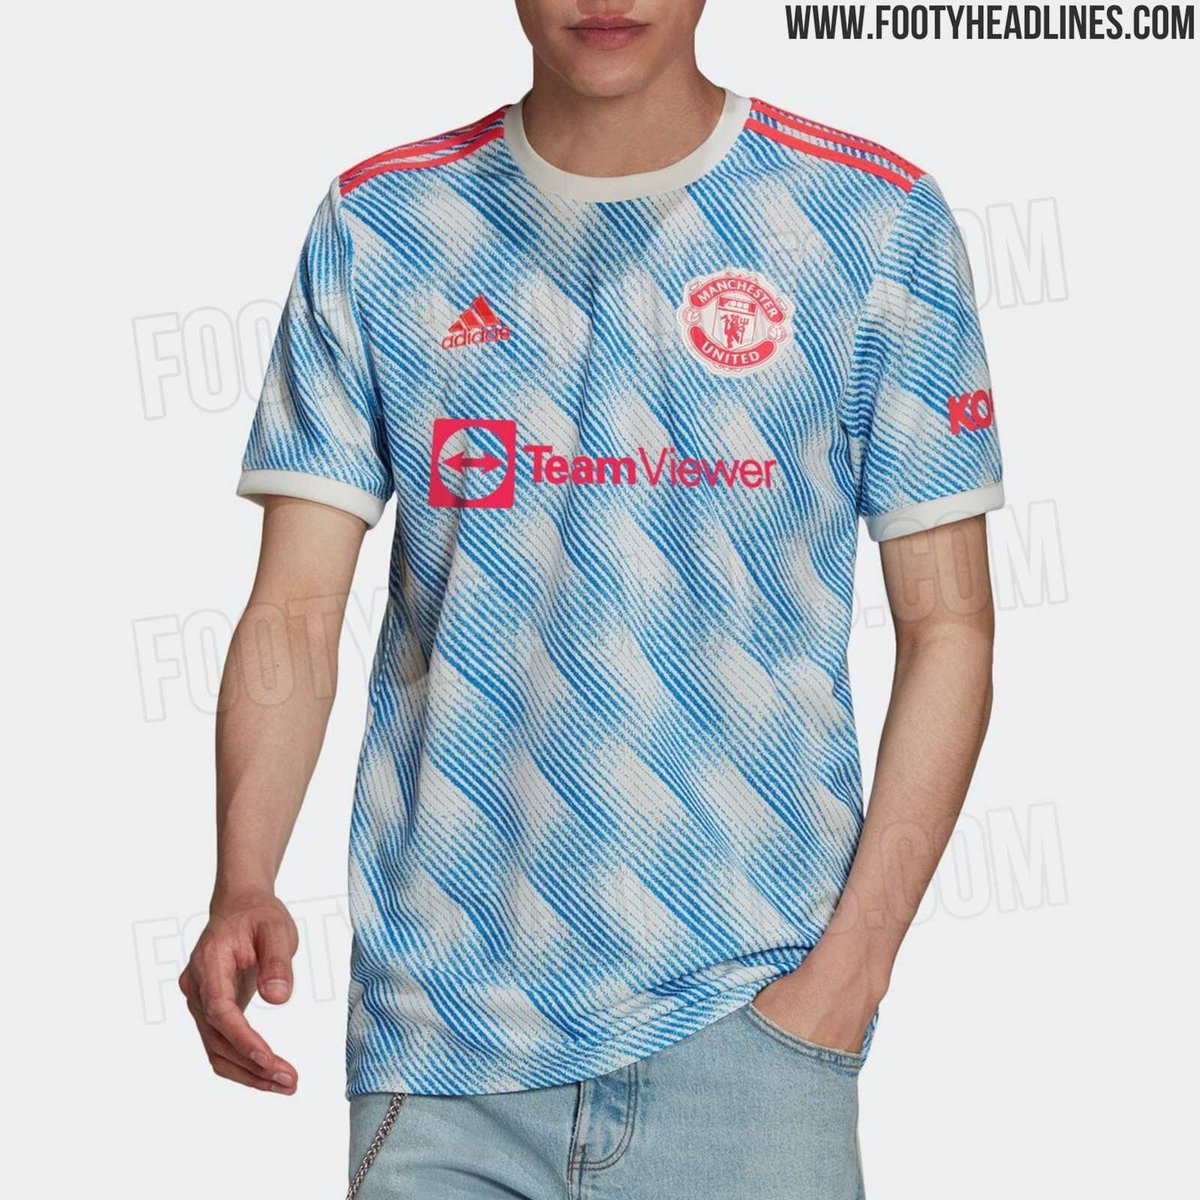 More leaked pictures of Manchester United's 2021-22 away shirt 👇 #mufc #mujournal   📸 @Footy_Headlines https://t.co/jFrY9b2oF1